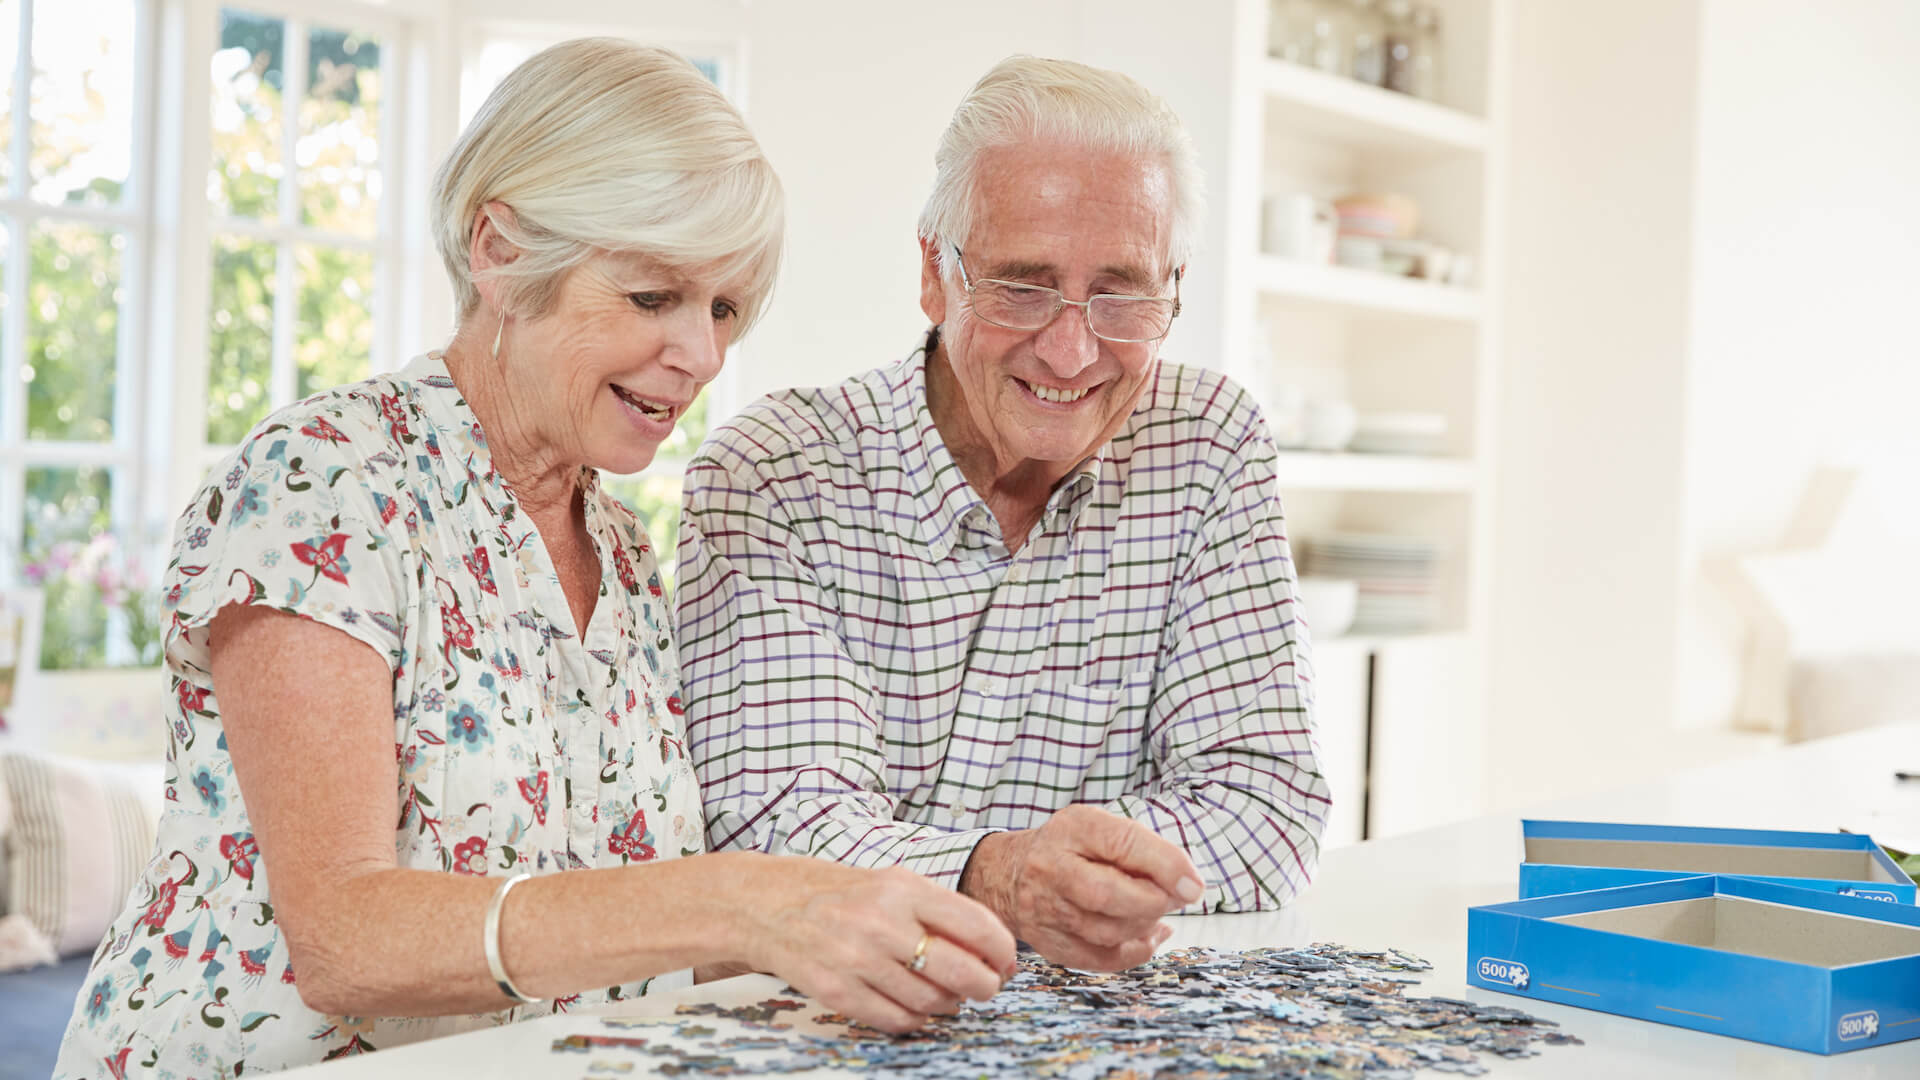 Senior couple doing a jigsaw puzzle at home